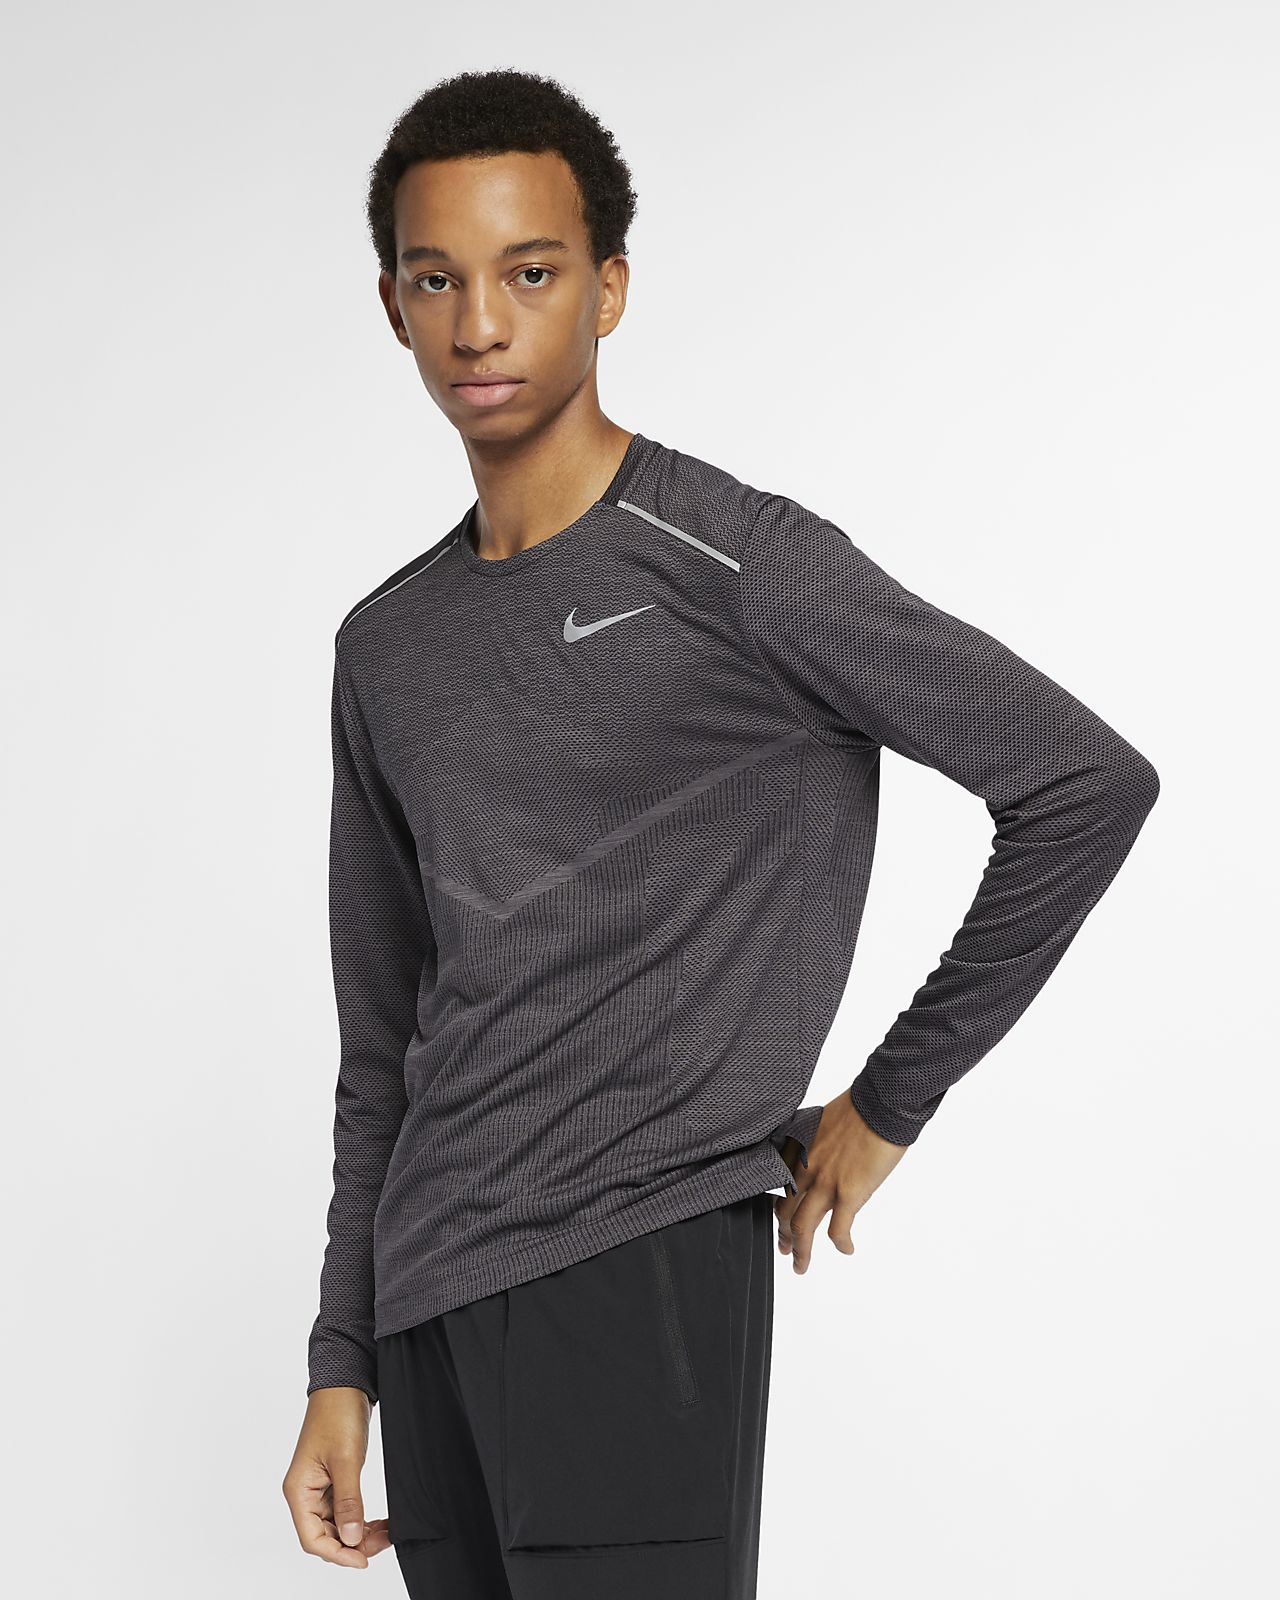 d82dbbd8dc10 Nike TechKnit Ultra Men s Long-Sleeve Running Top. Nike.com